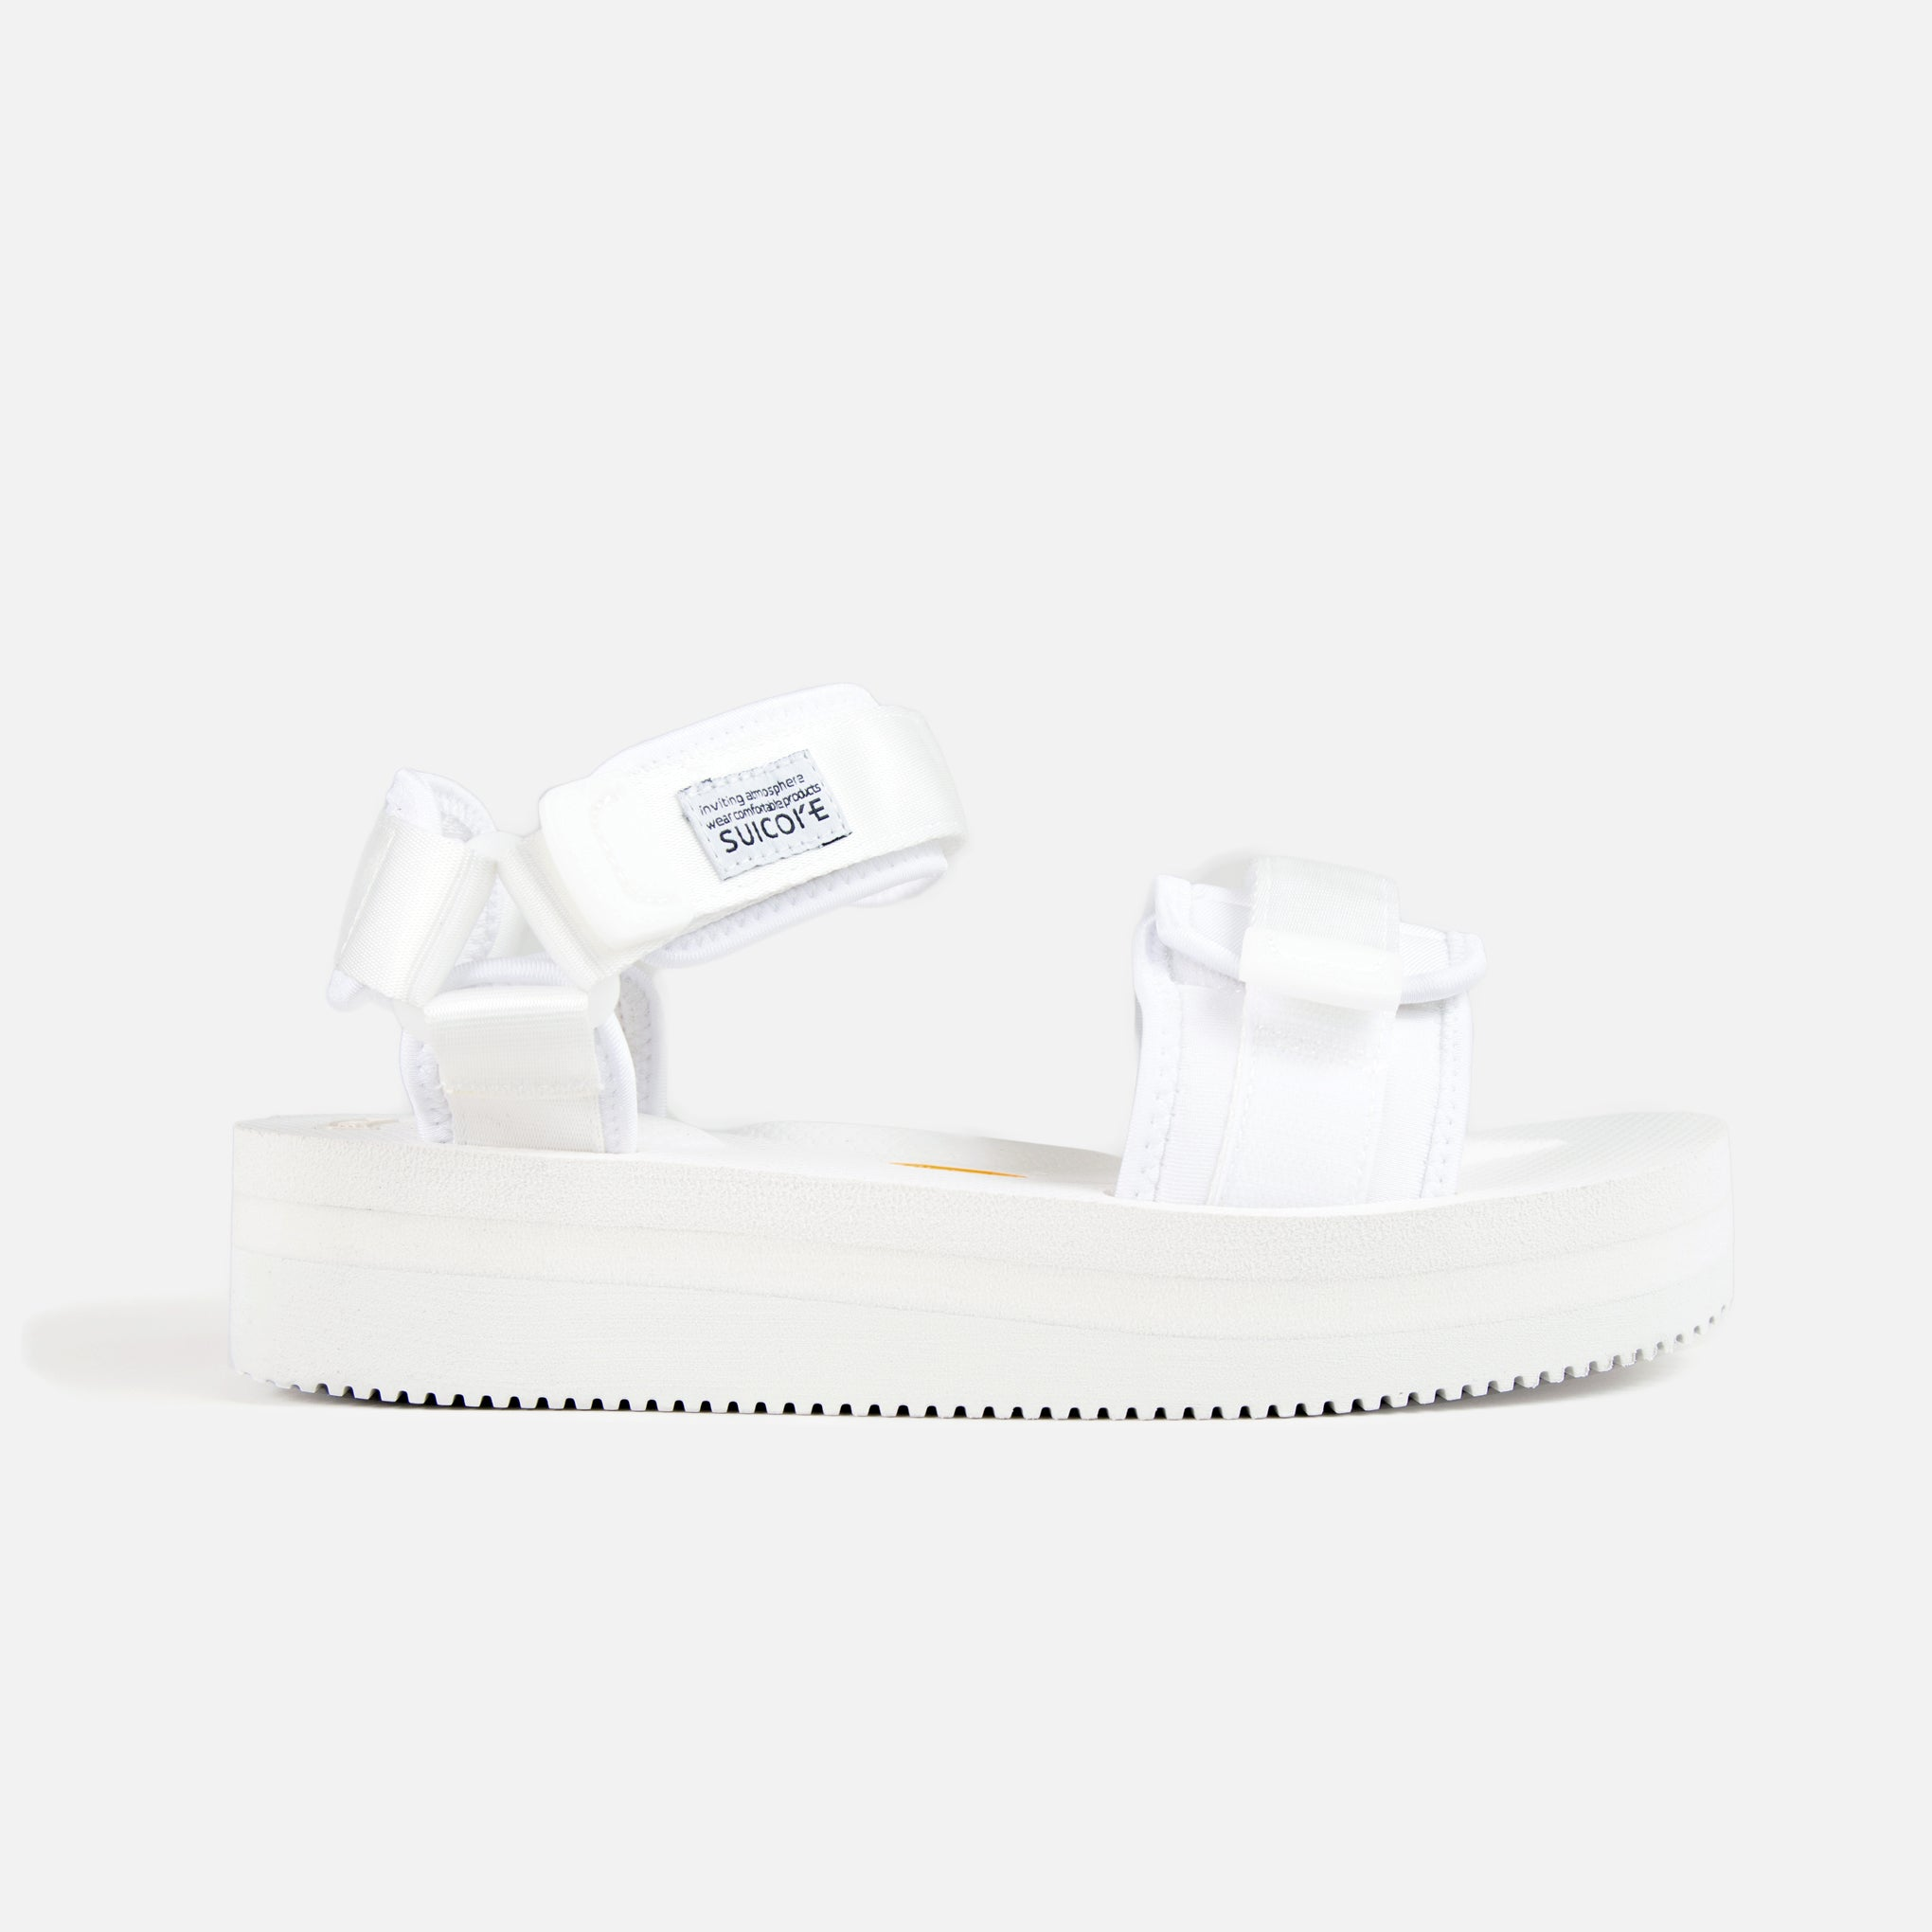 3bd73d515d7 Suicoke Cel-VPO Sandals in White